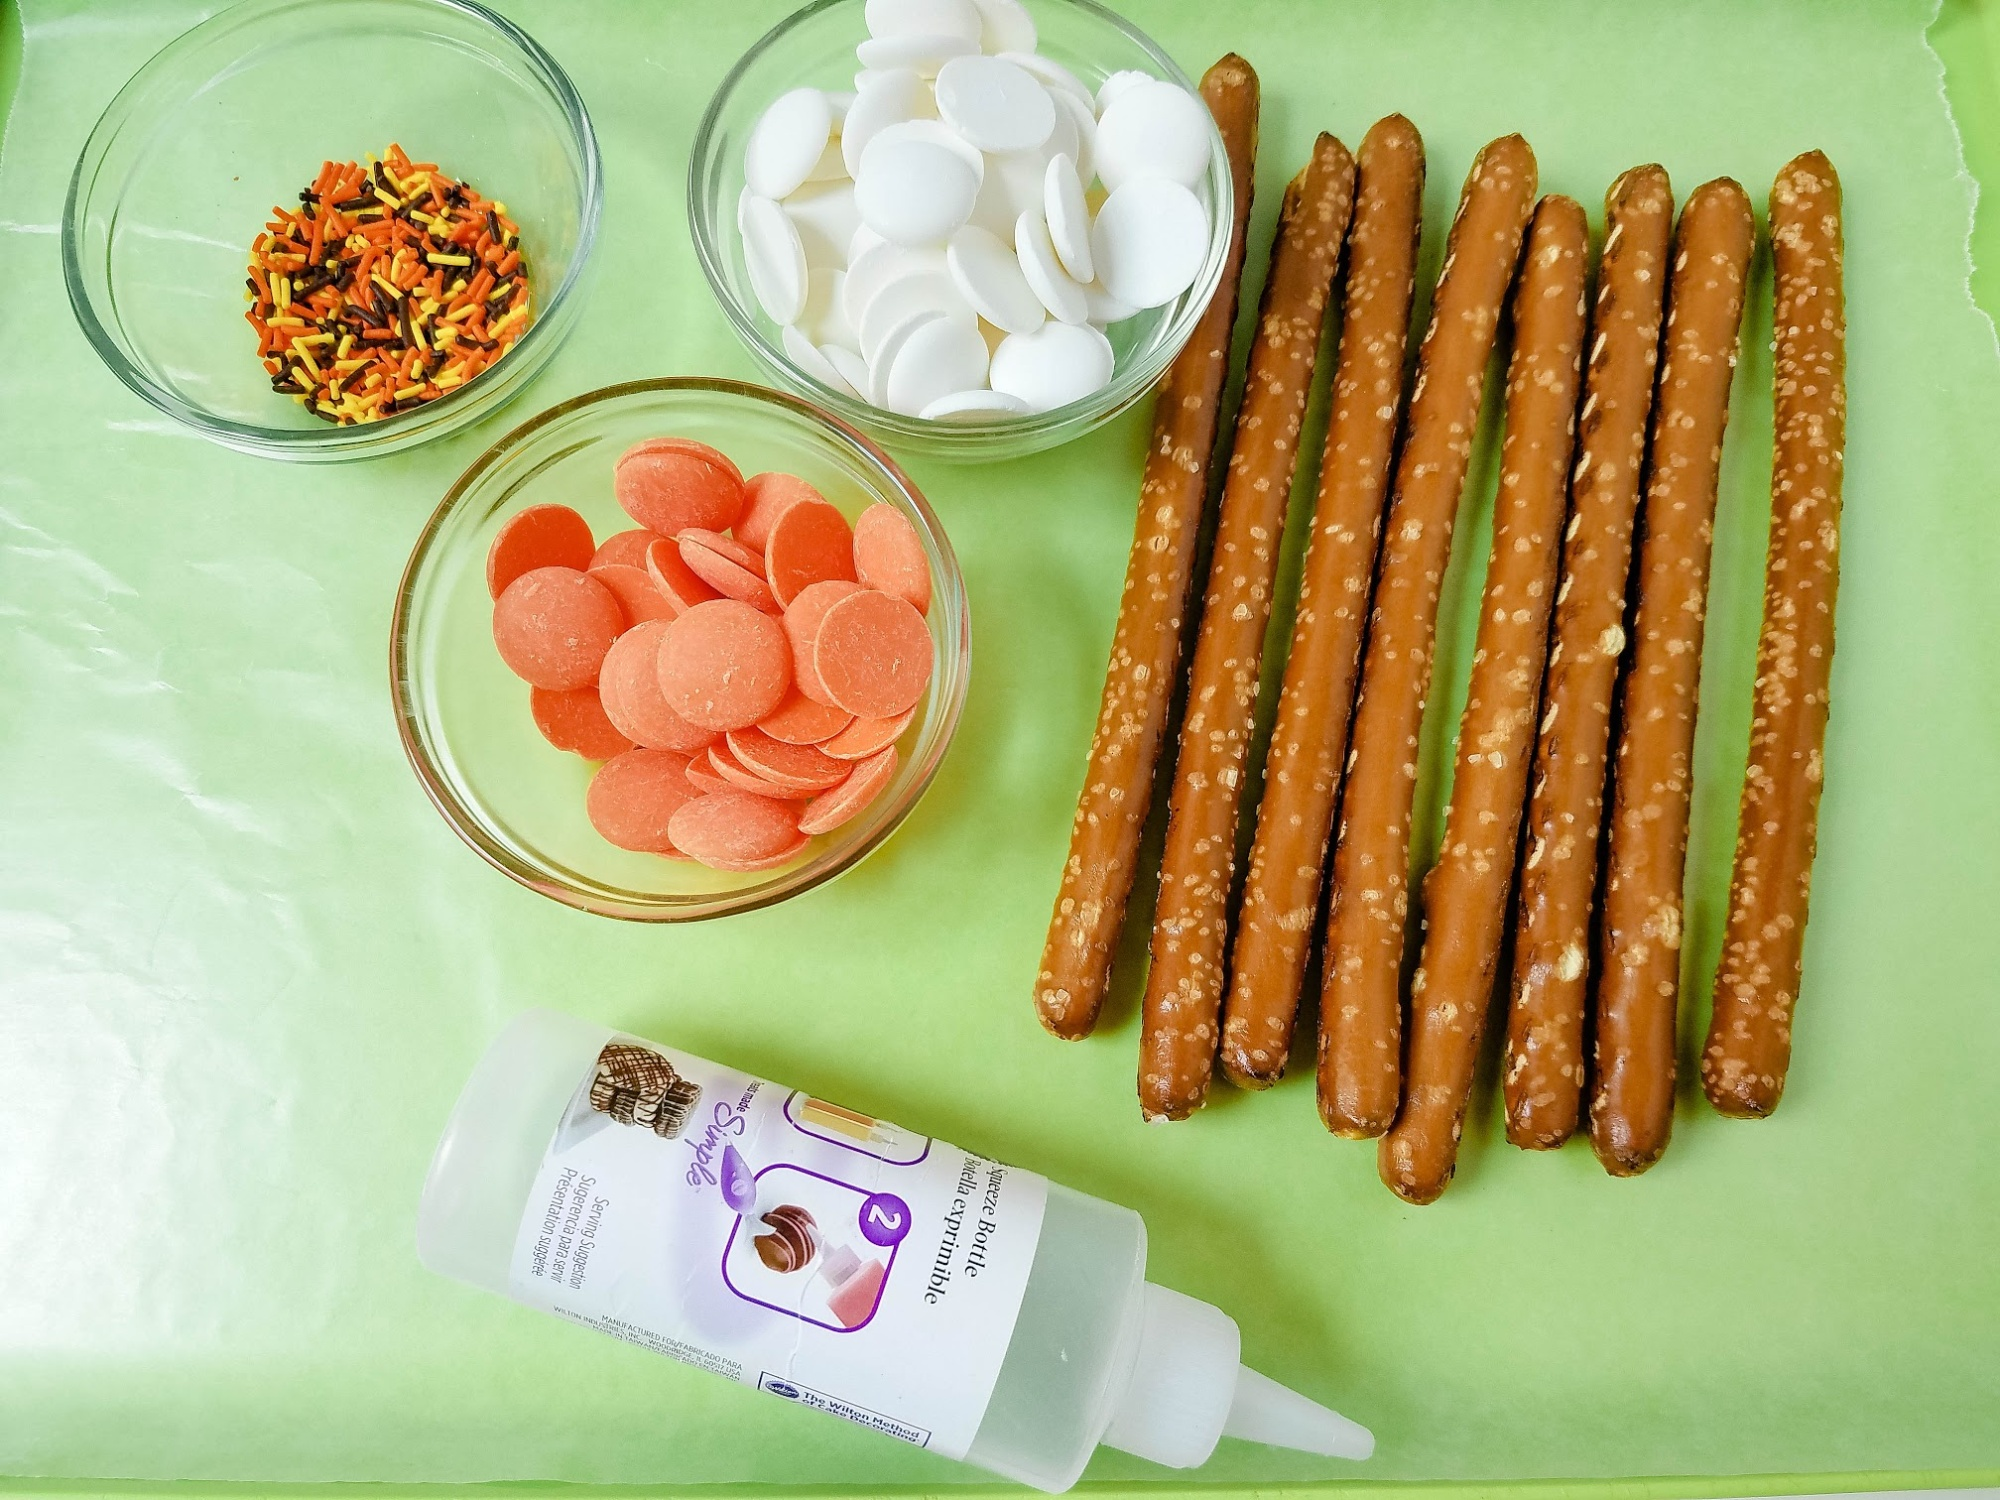 Ingredients for easy snack idea